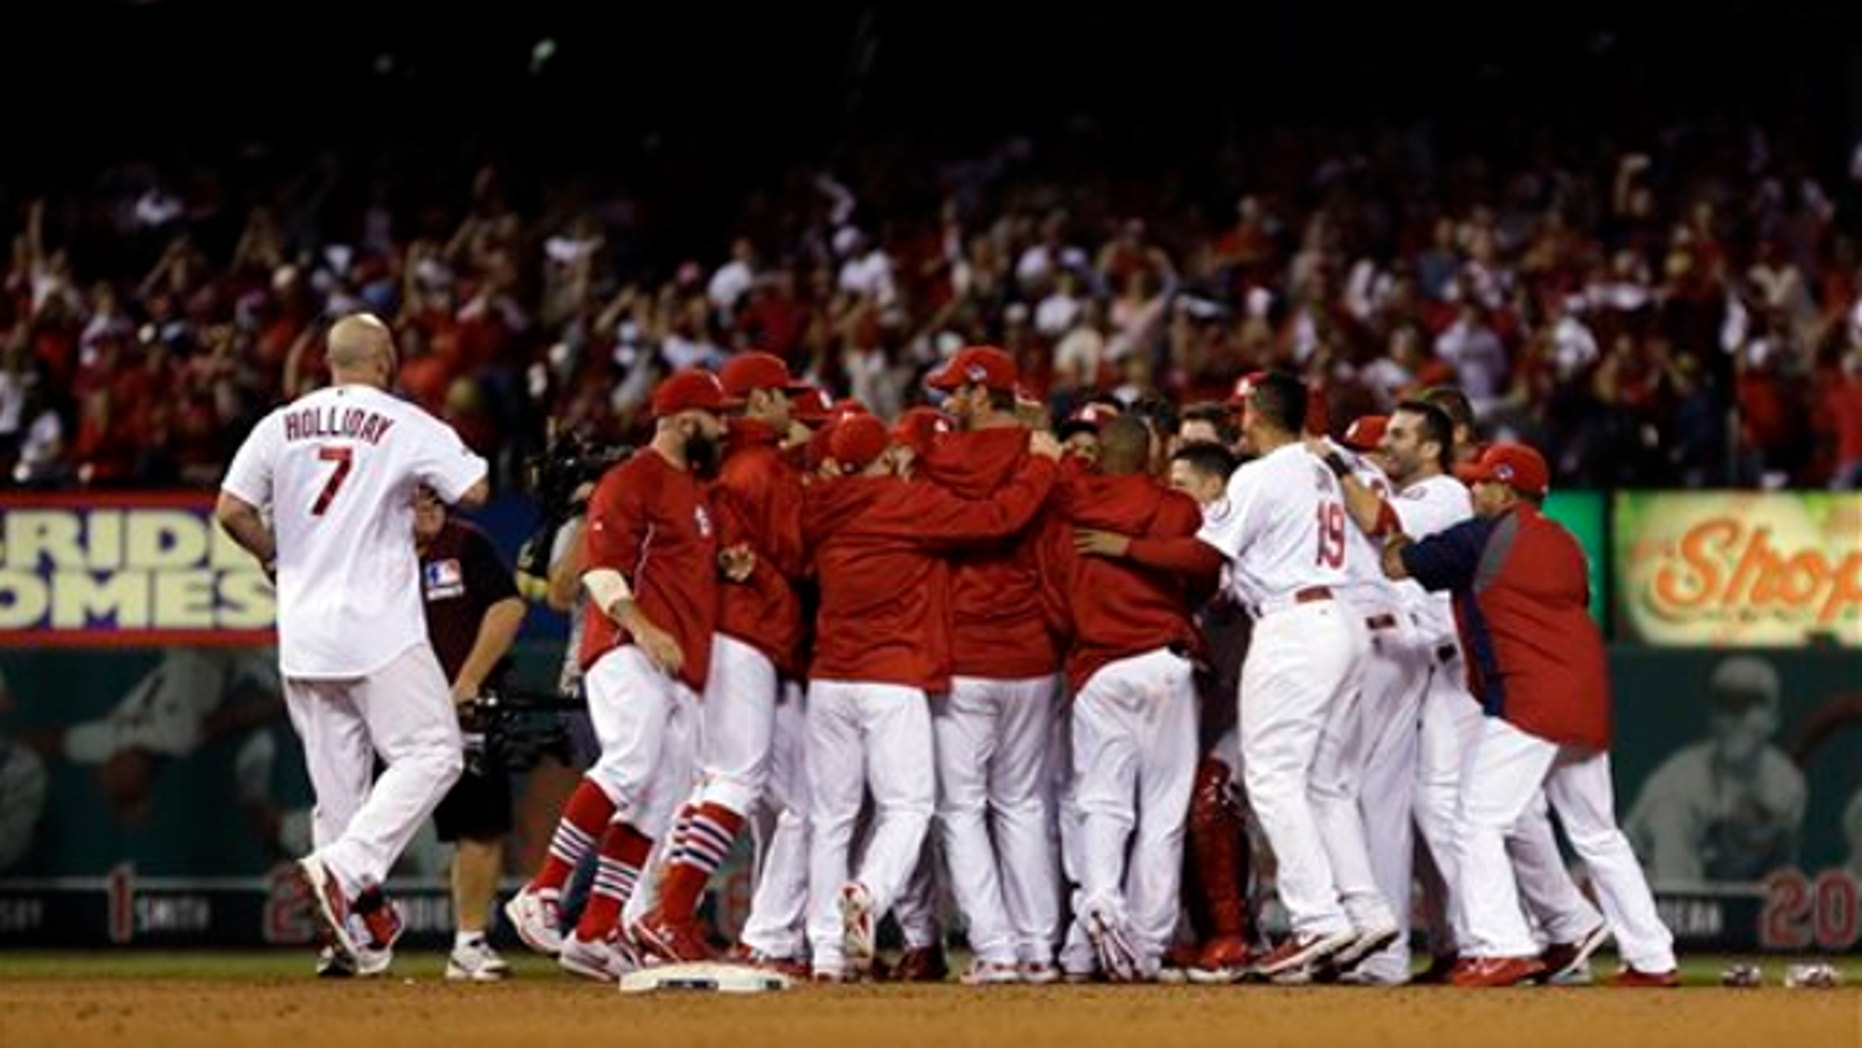 Oct. 12, 2013: St. Louis Cardinals' Carlos Beltran is mobbed by teammates after his game-winning hit during the 13th inning of Game 1 of the National League baseball championship series against the Los Angeles Dodgers in St. Louis.